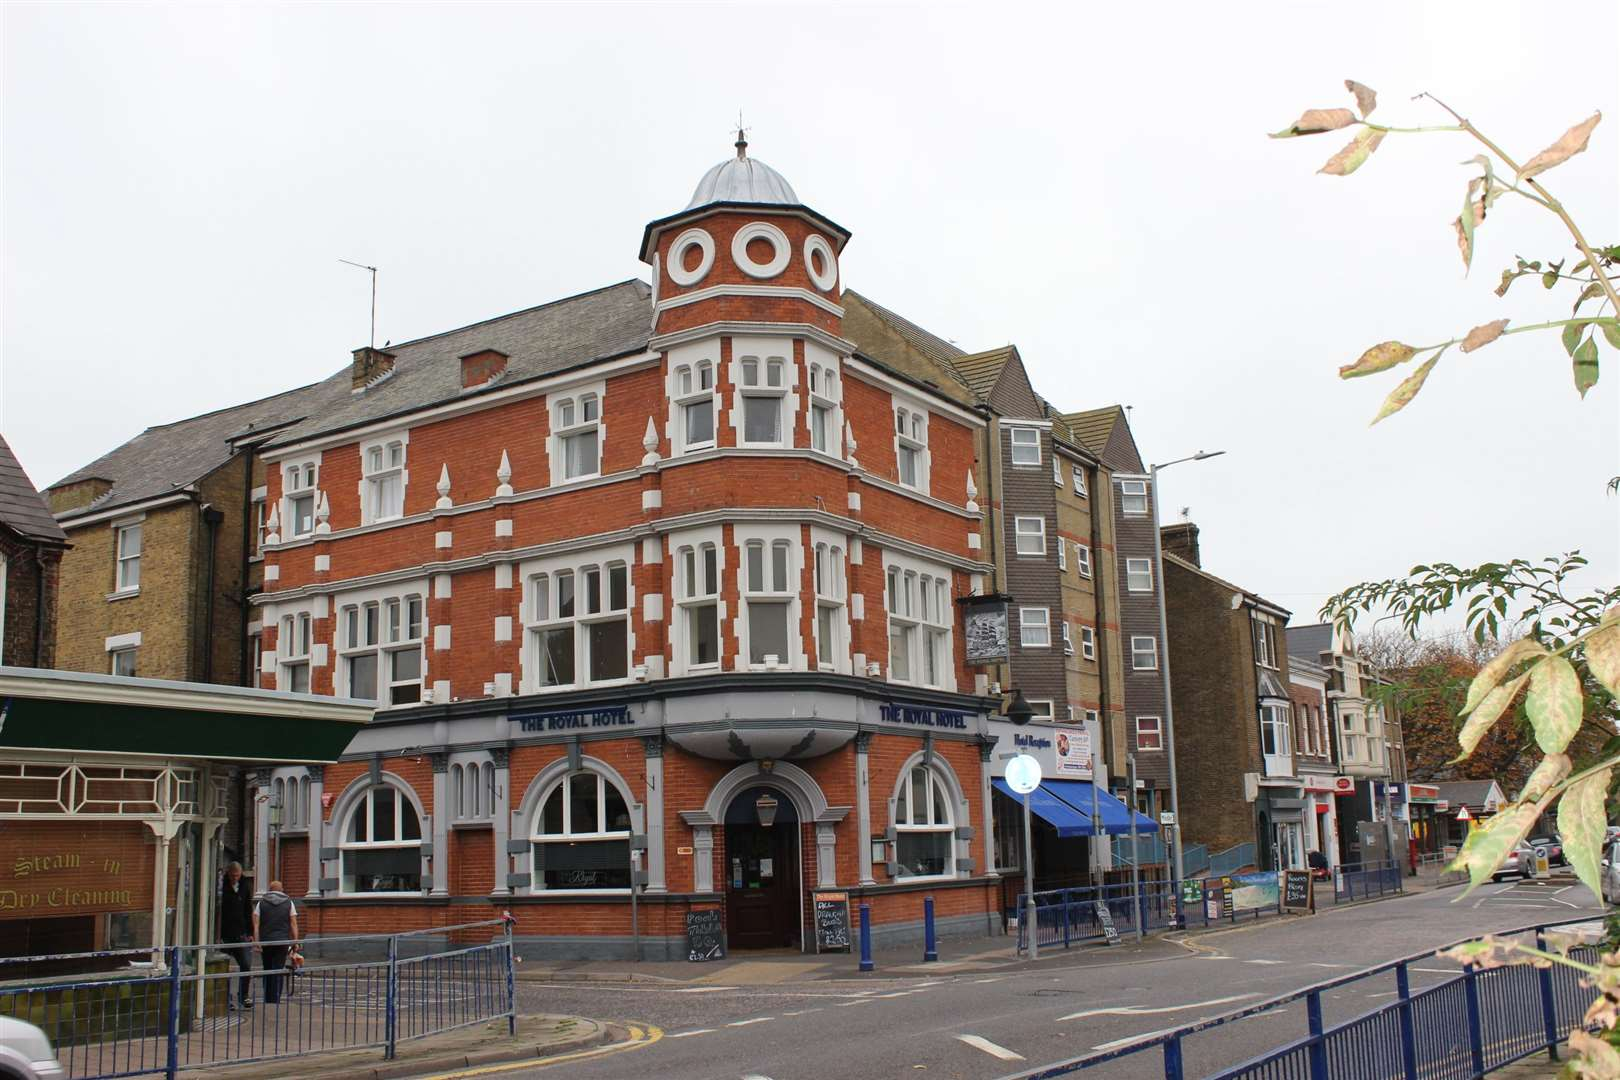 The Royal Hotel at the junction of Sheerness Broadway and Royal Road